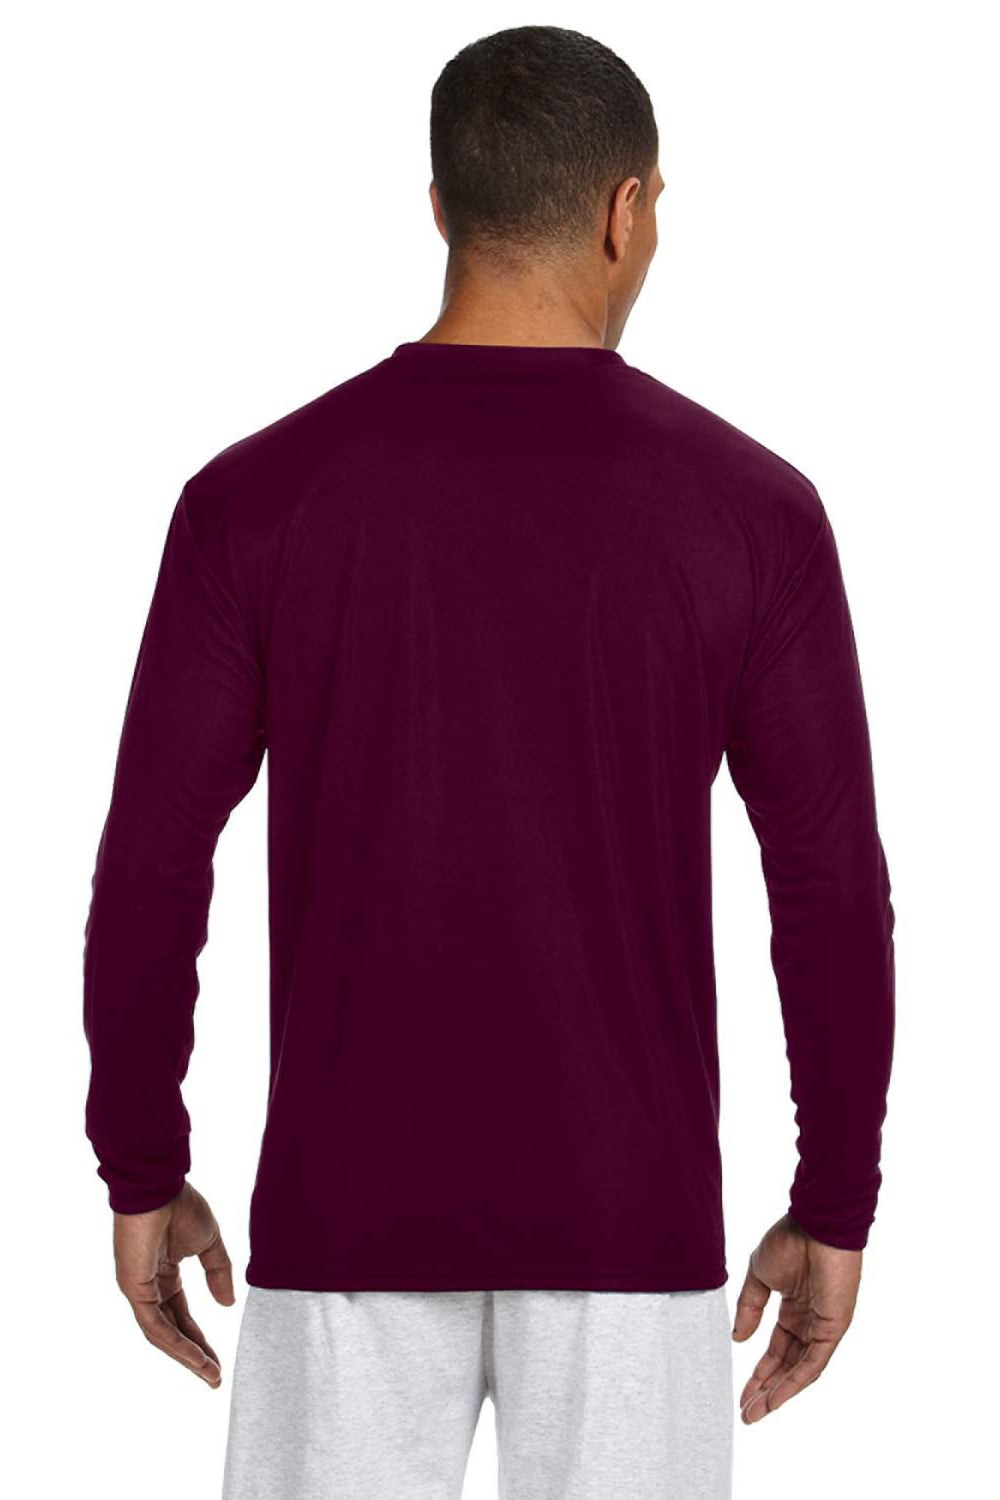 A4 N3165 Mens Cooling Performance Moisture Wicking Long Sleeve Crewneck T-Shirt Maroon Back